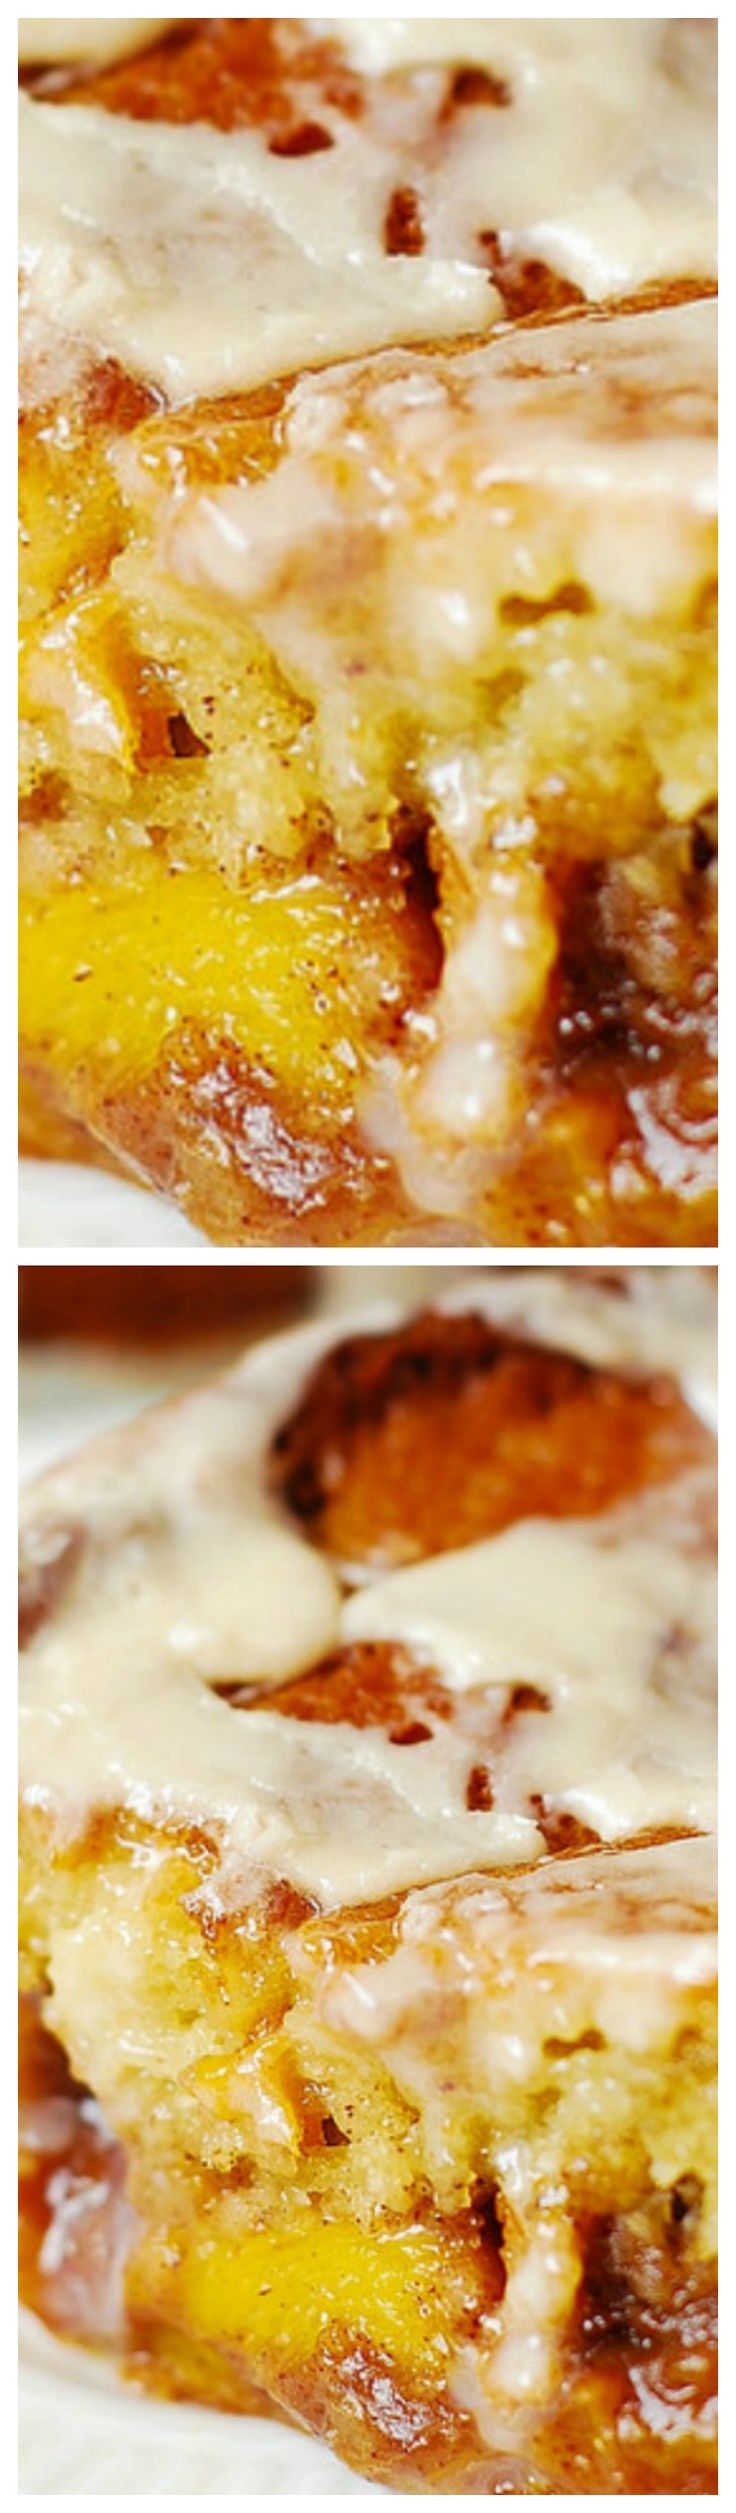 25+ best ideas about Peach coffee cakes on Pinterest ...